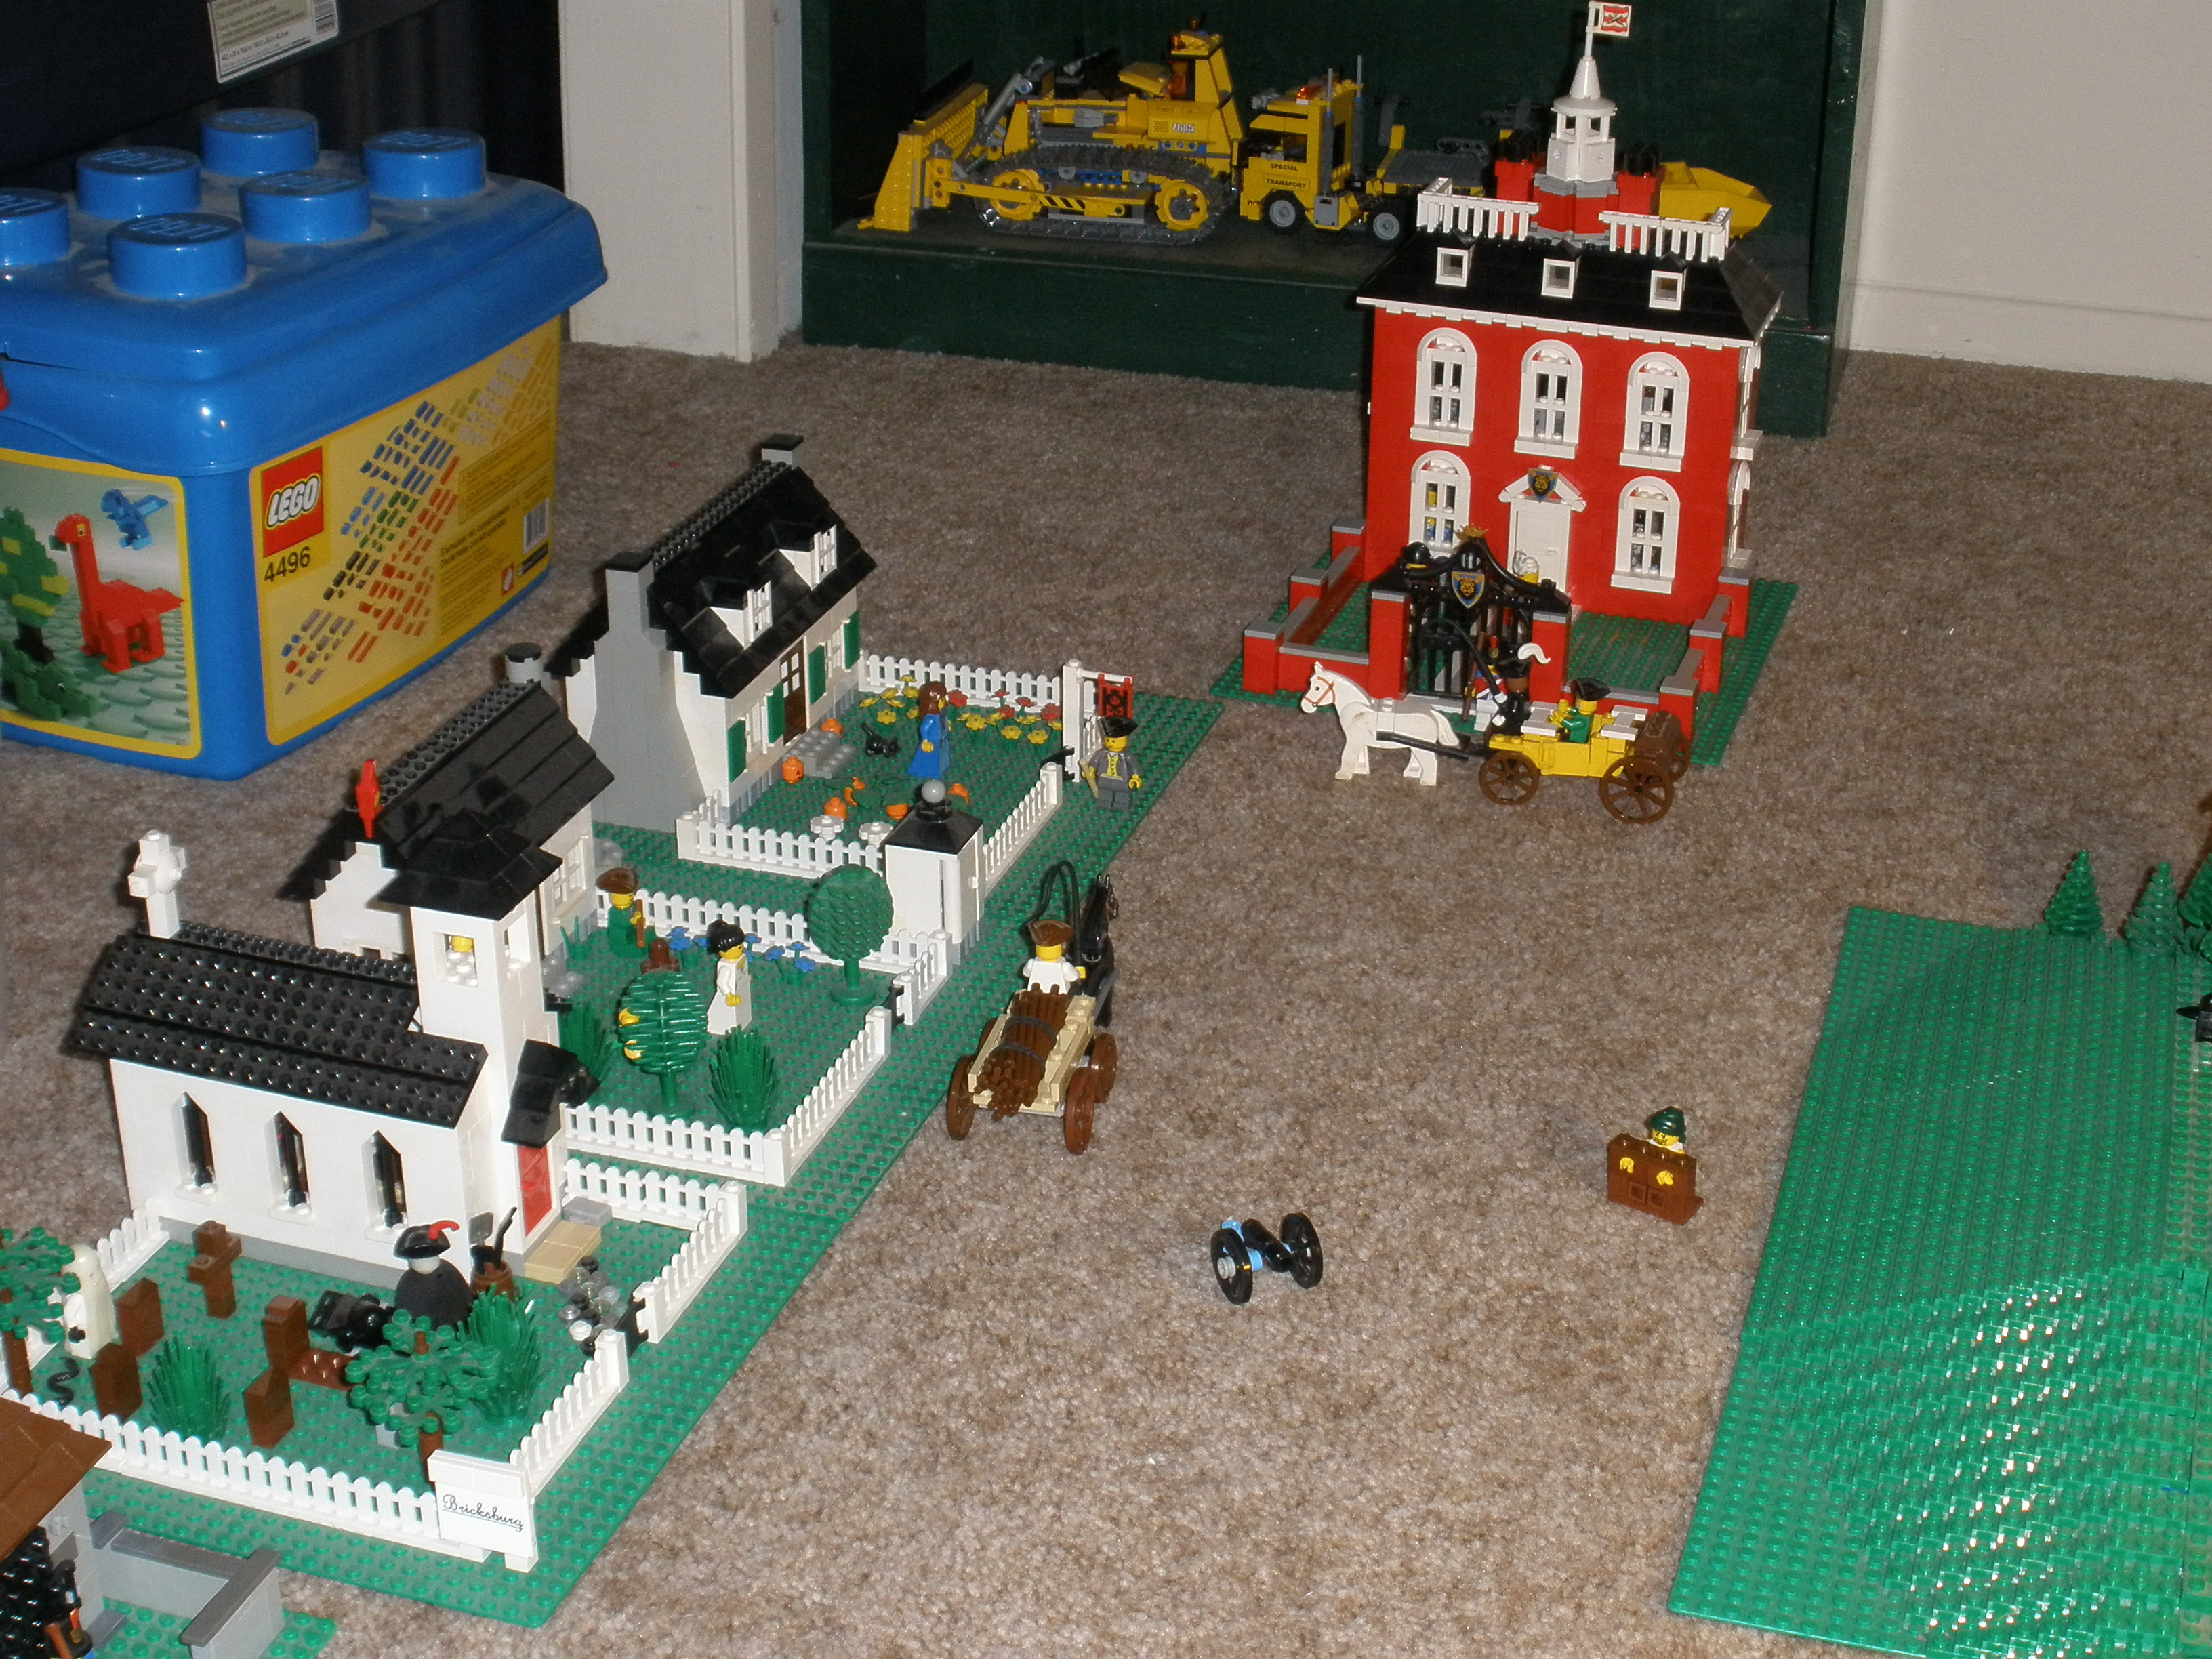 lego_picts_010.jpg